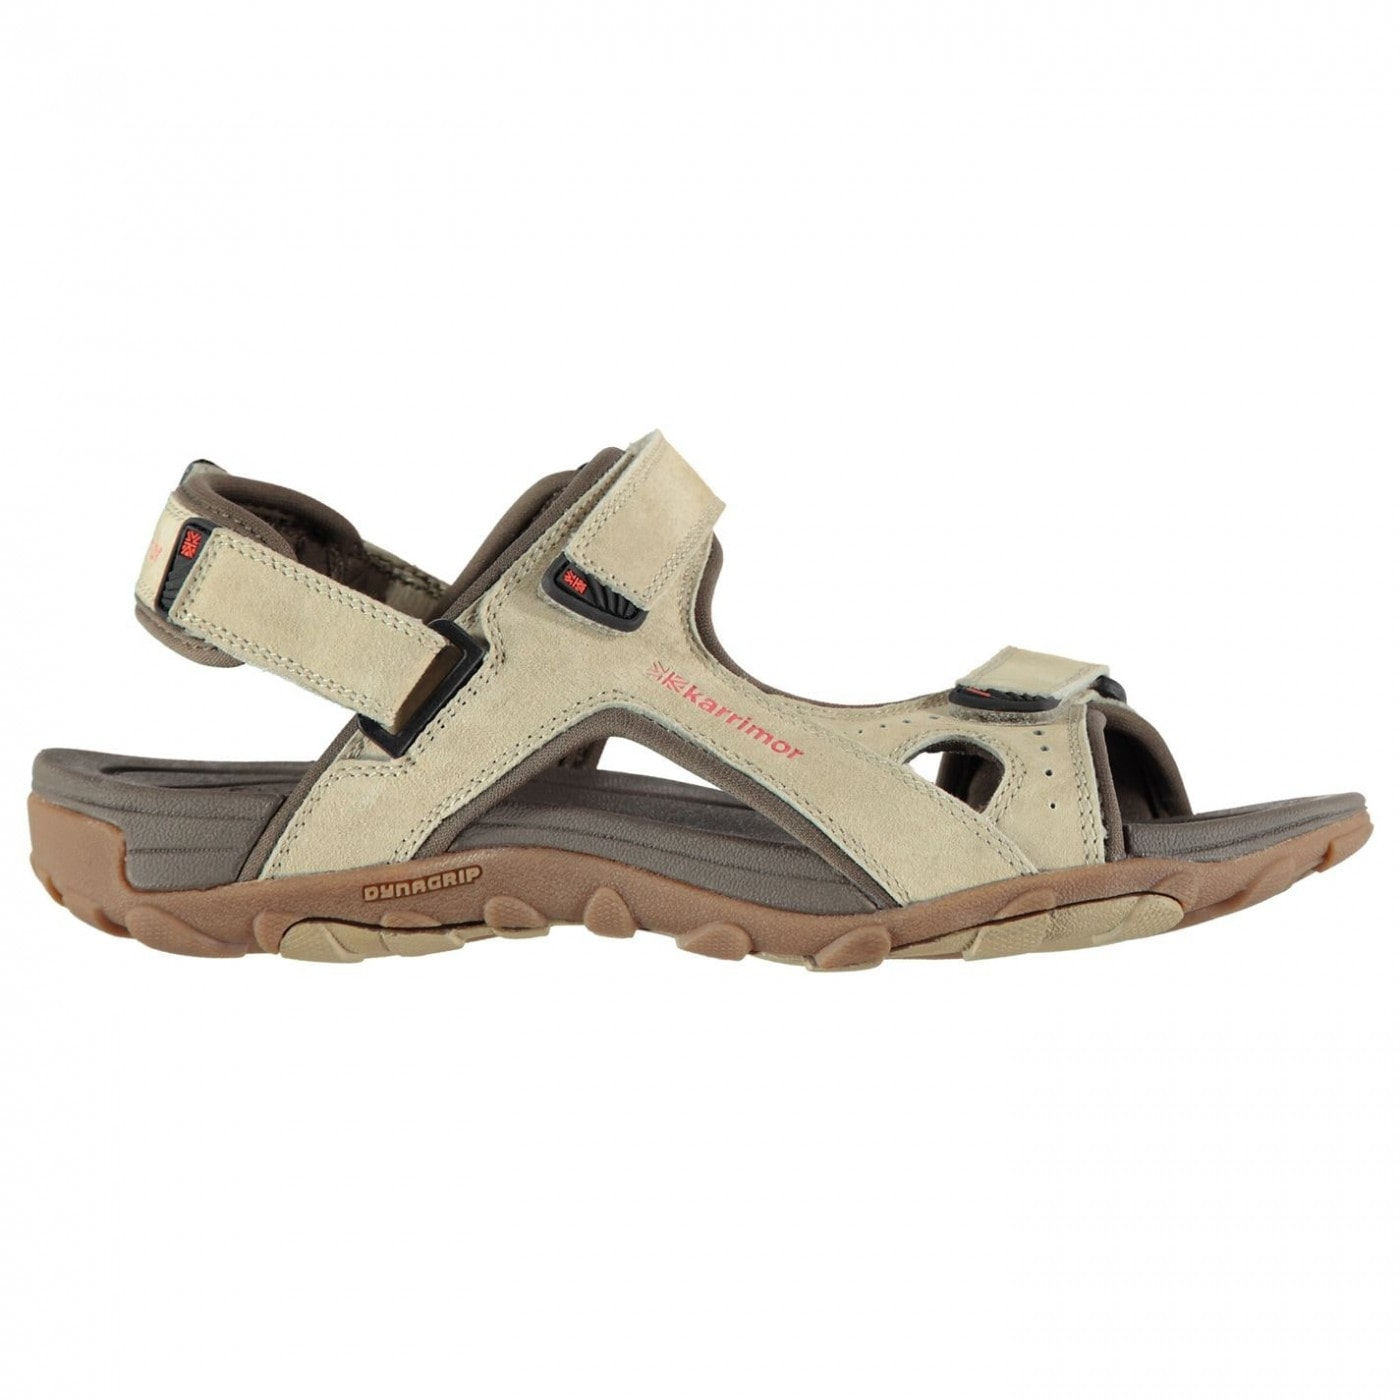 Karrimor Antibes Leather Sandals Ladies